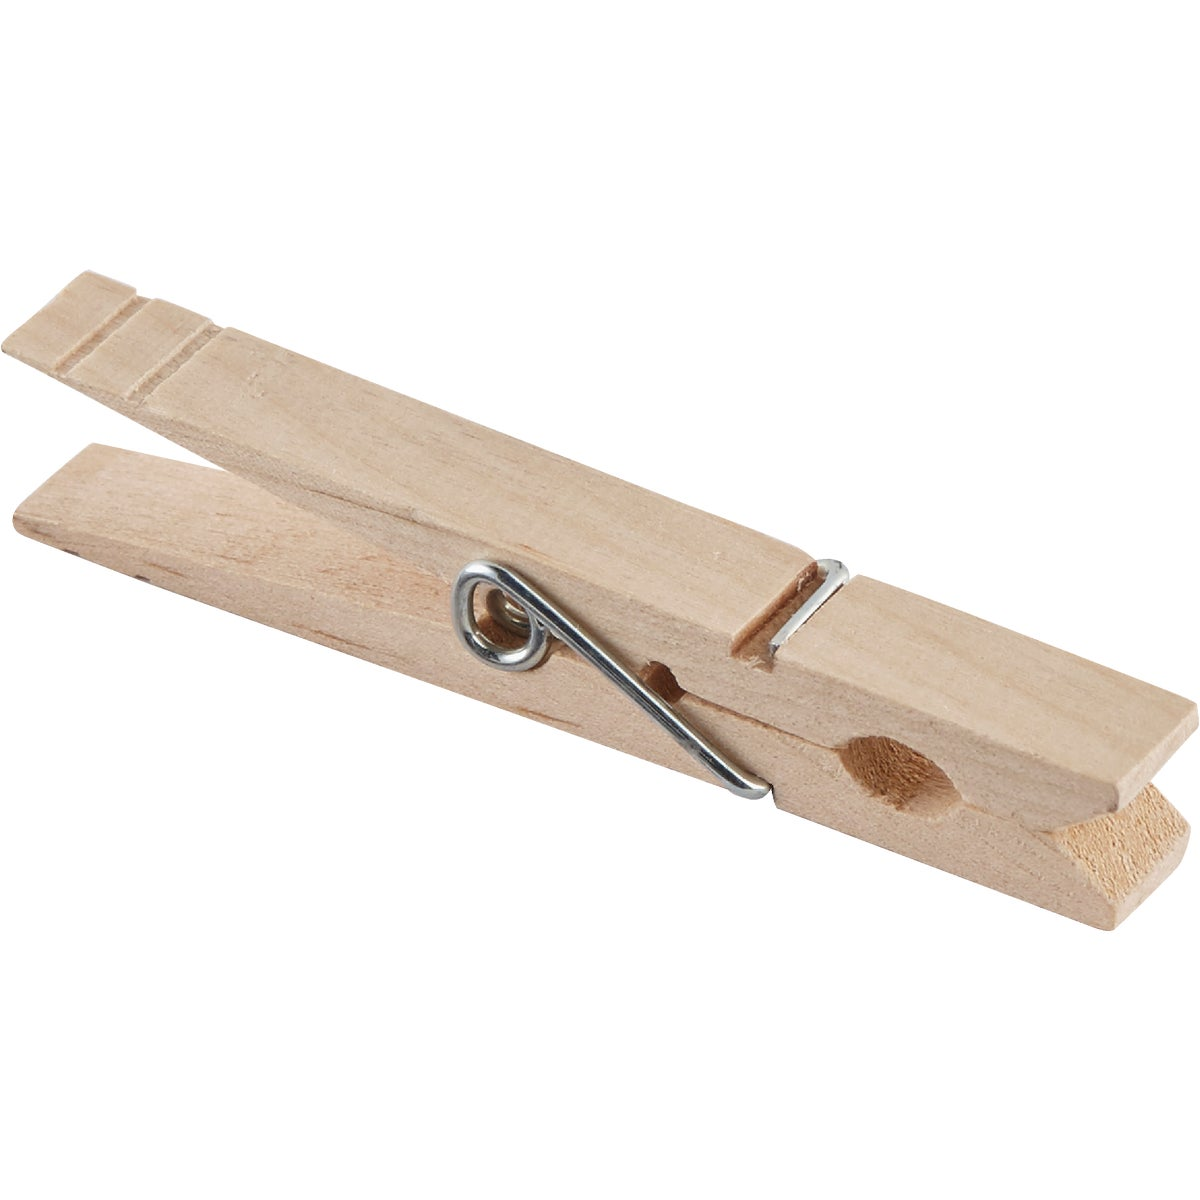 WOODEN SPRING CLOTHESPIN - 1220216 by Homz  Seymour